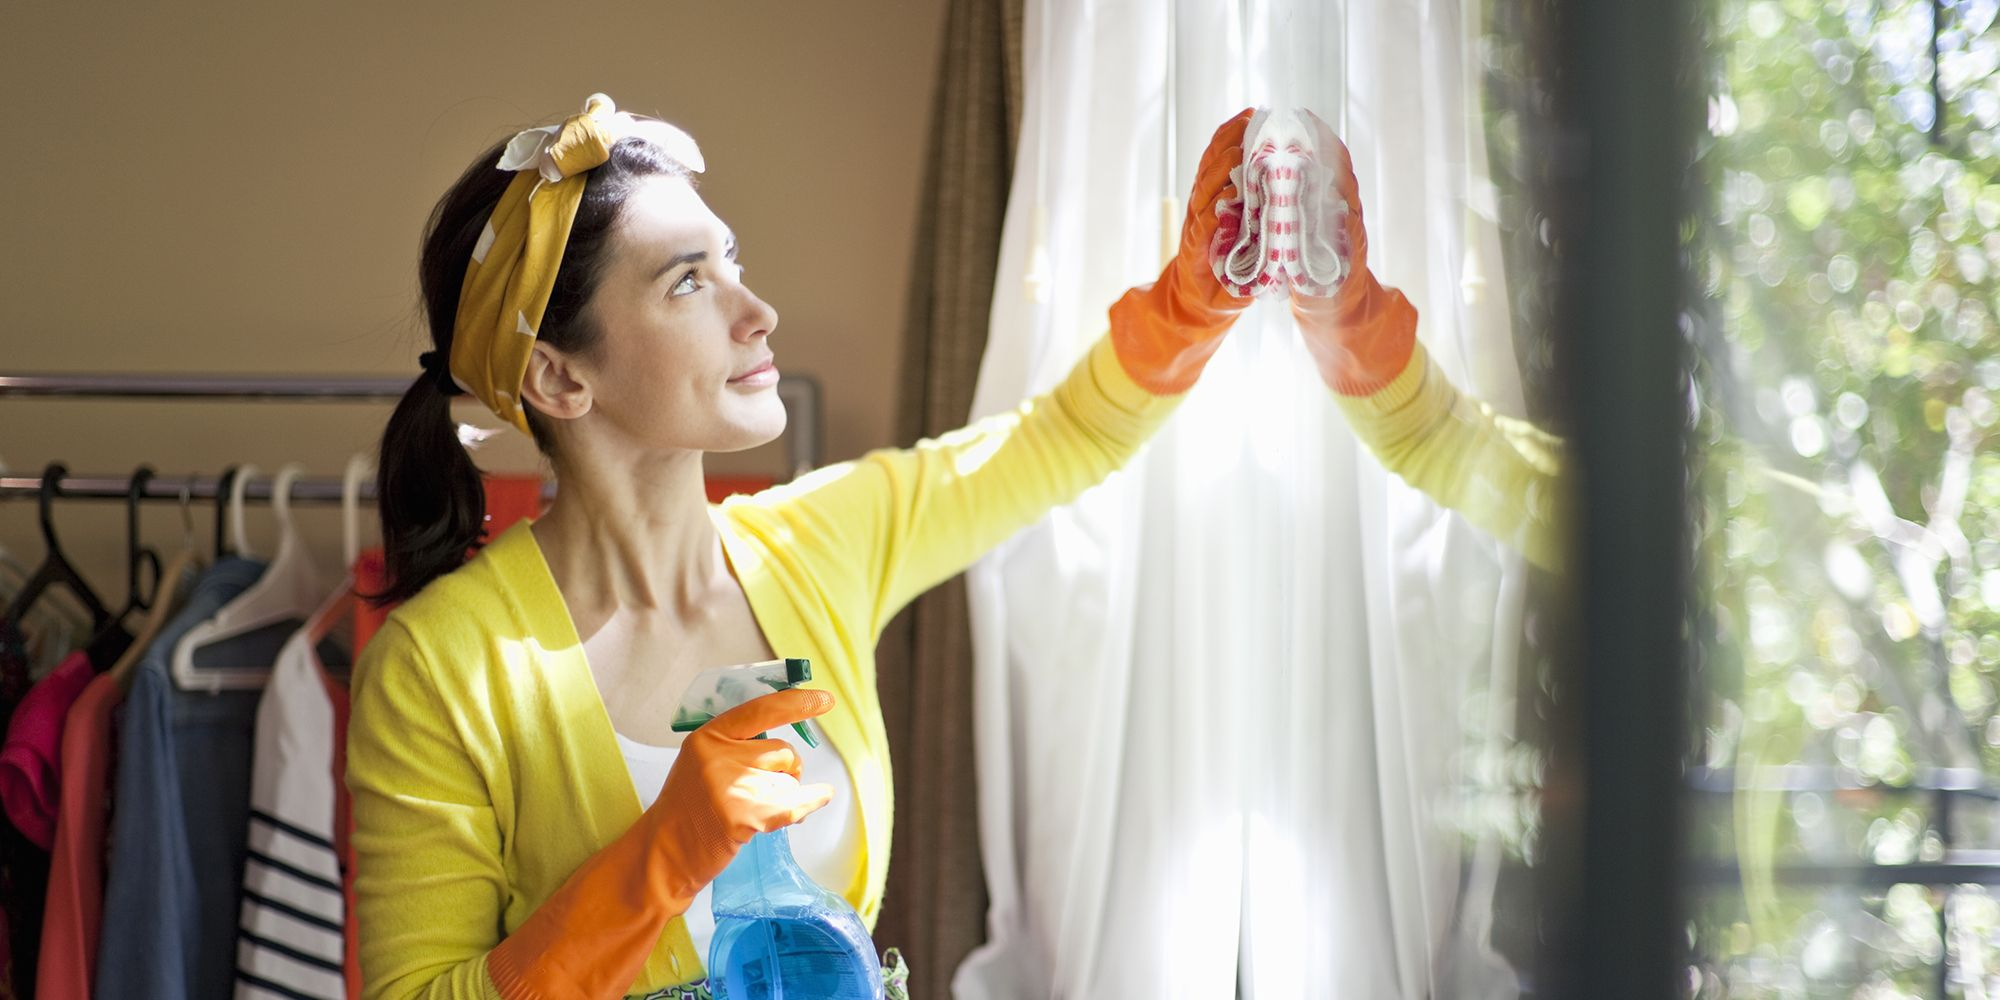 woman cleaning the windows of her apartment